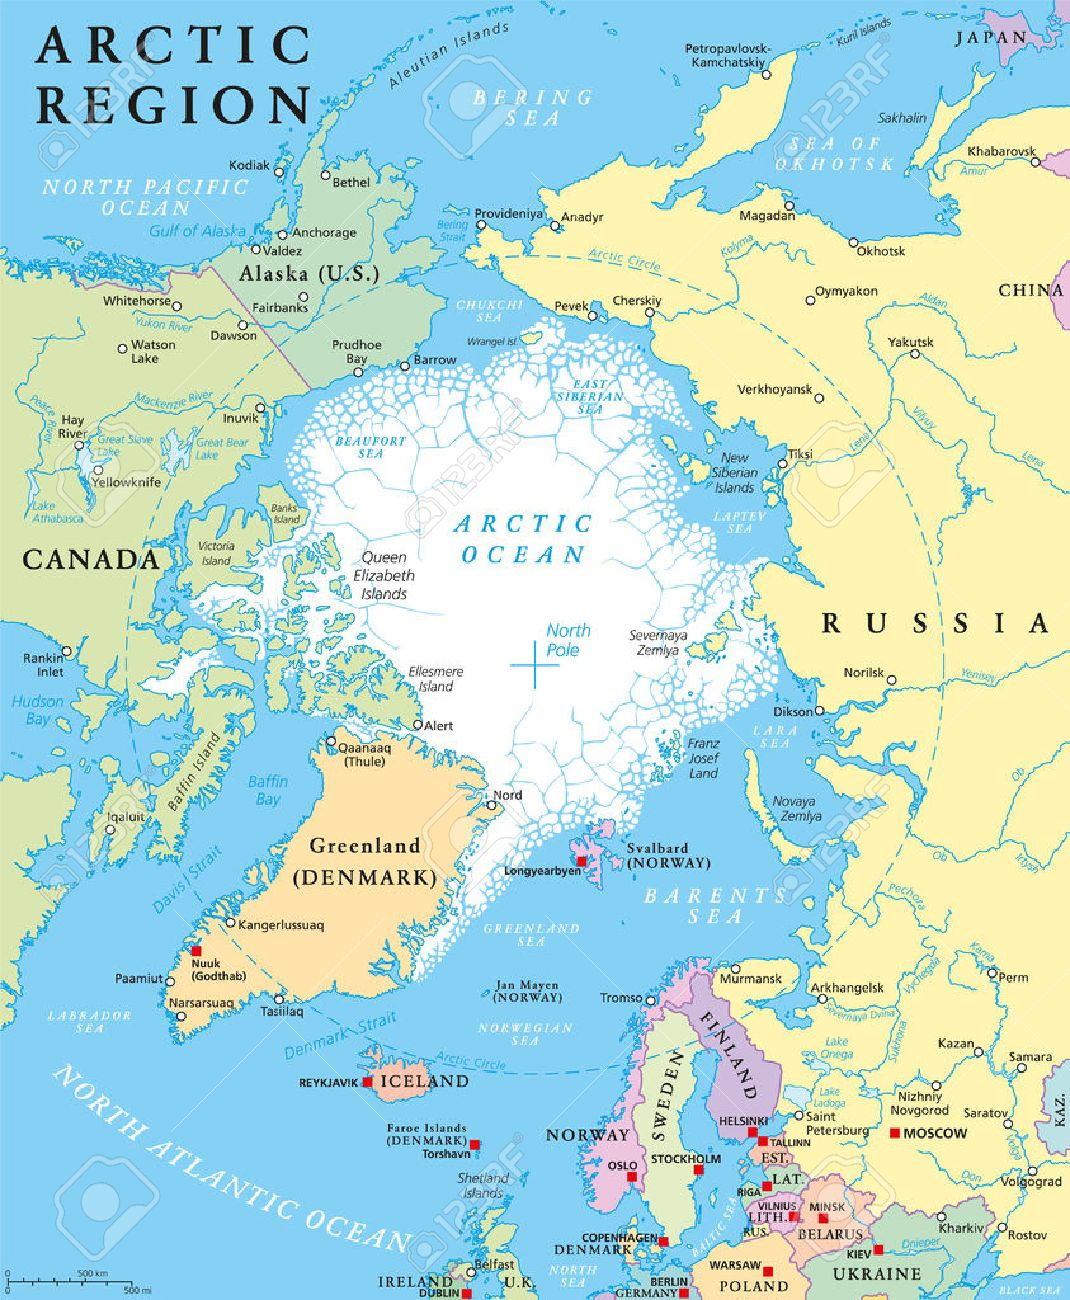 Arctic region political map with countries, capitals, national borders, important cities, rivers and lakes. Arctic Ocean with average minimum extent of sea ice. English labeling and scaling. Standard-Bild - 58784777